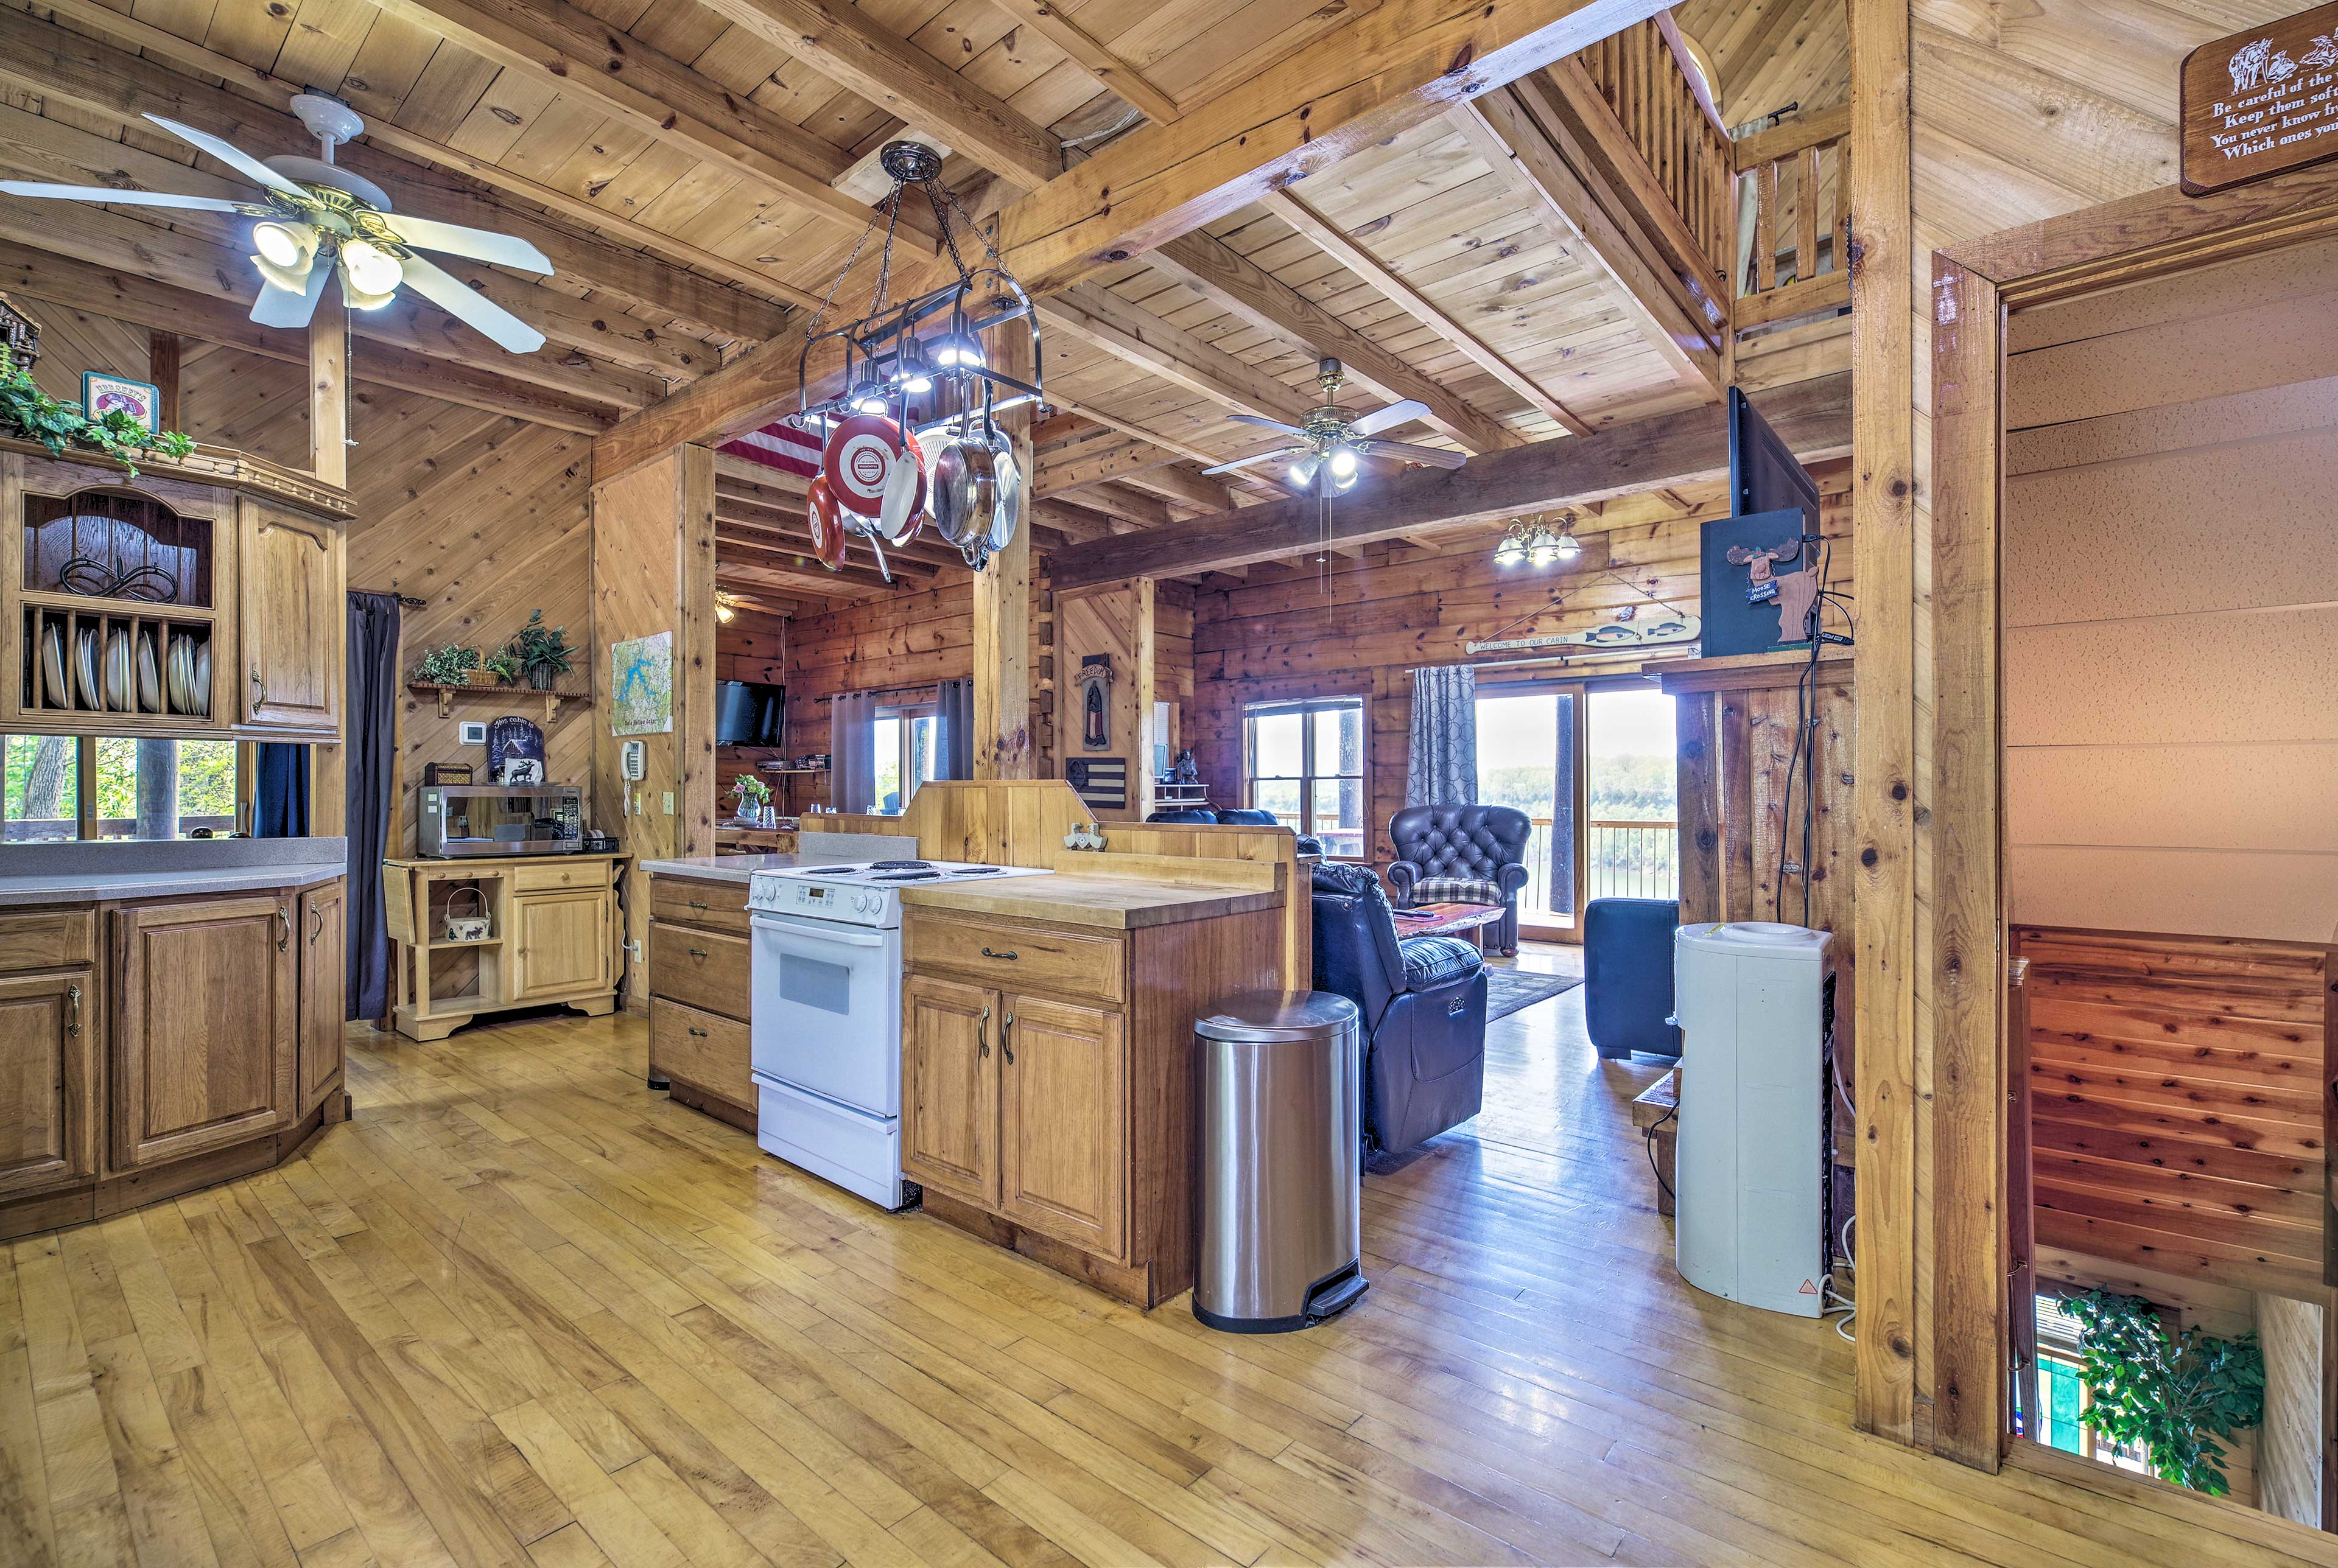 This fully equipped kitchen features ample counter space and cookware.